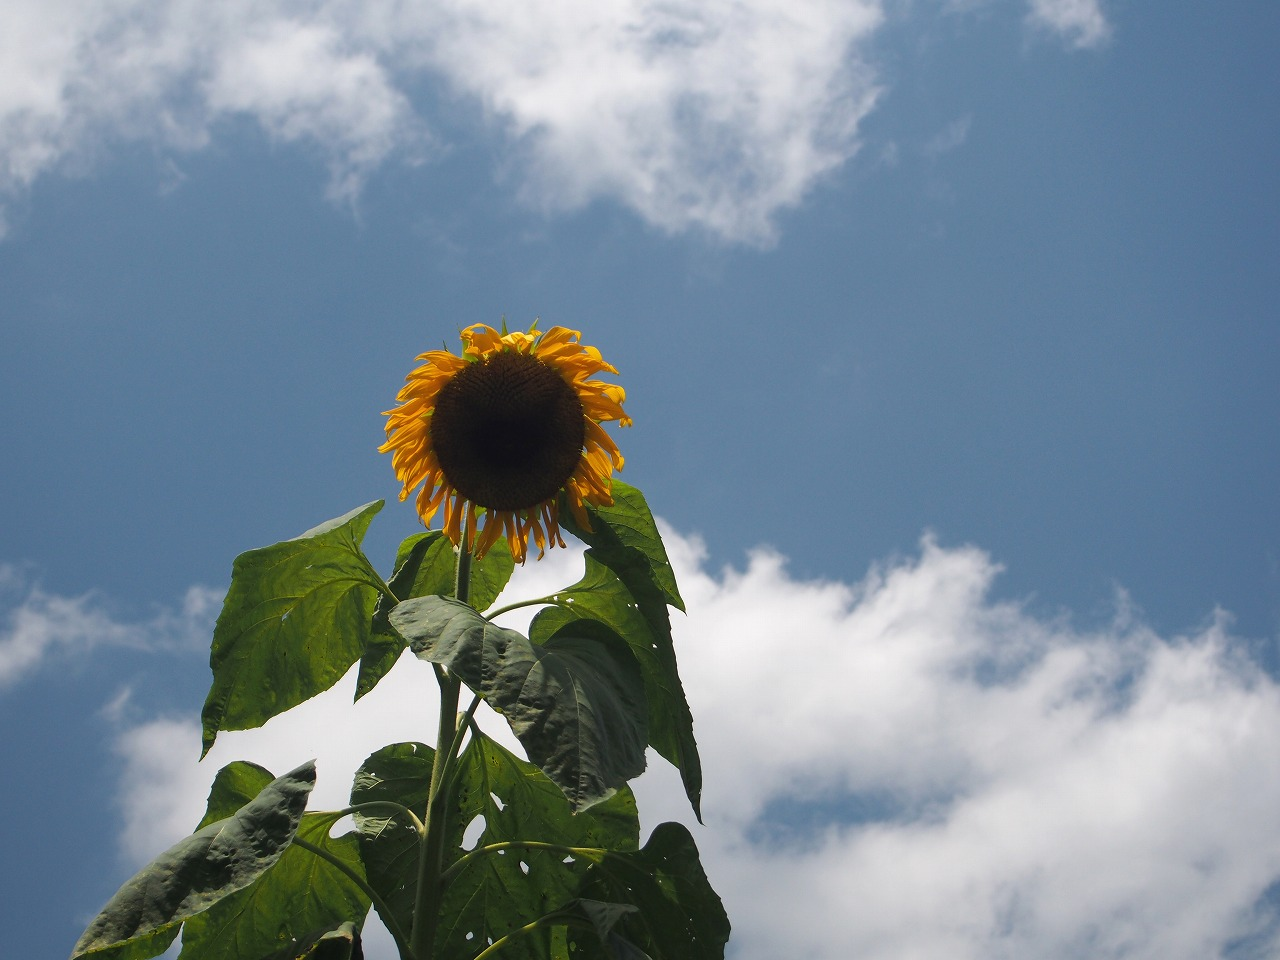 20160716-SunFlower-O01.jpg